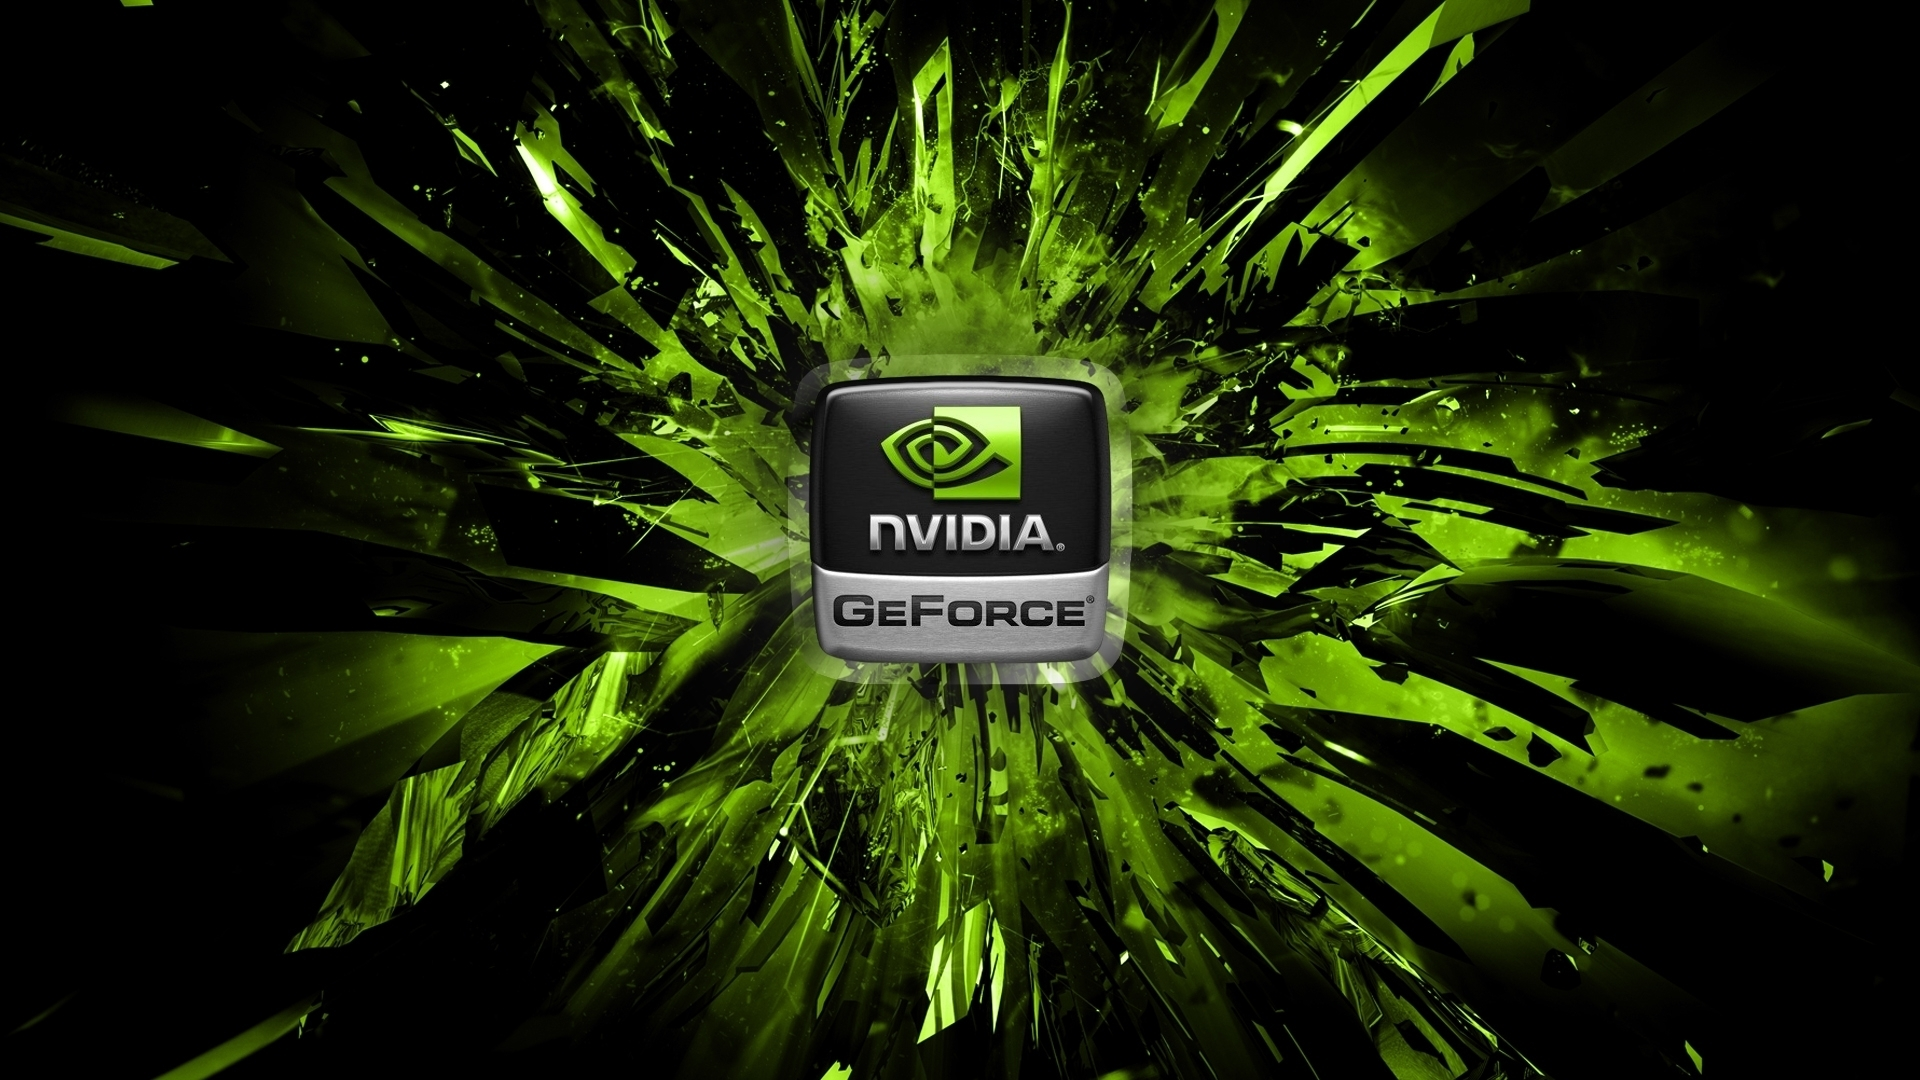 nvidia wallpapers photos and desktop backgrounds up to 8K